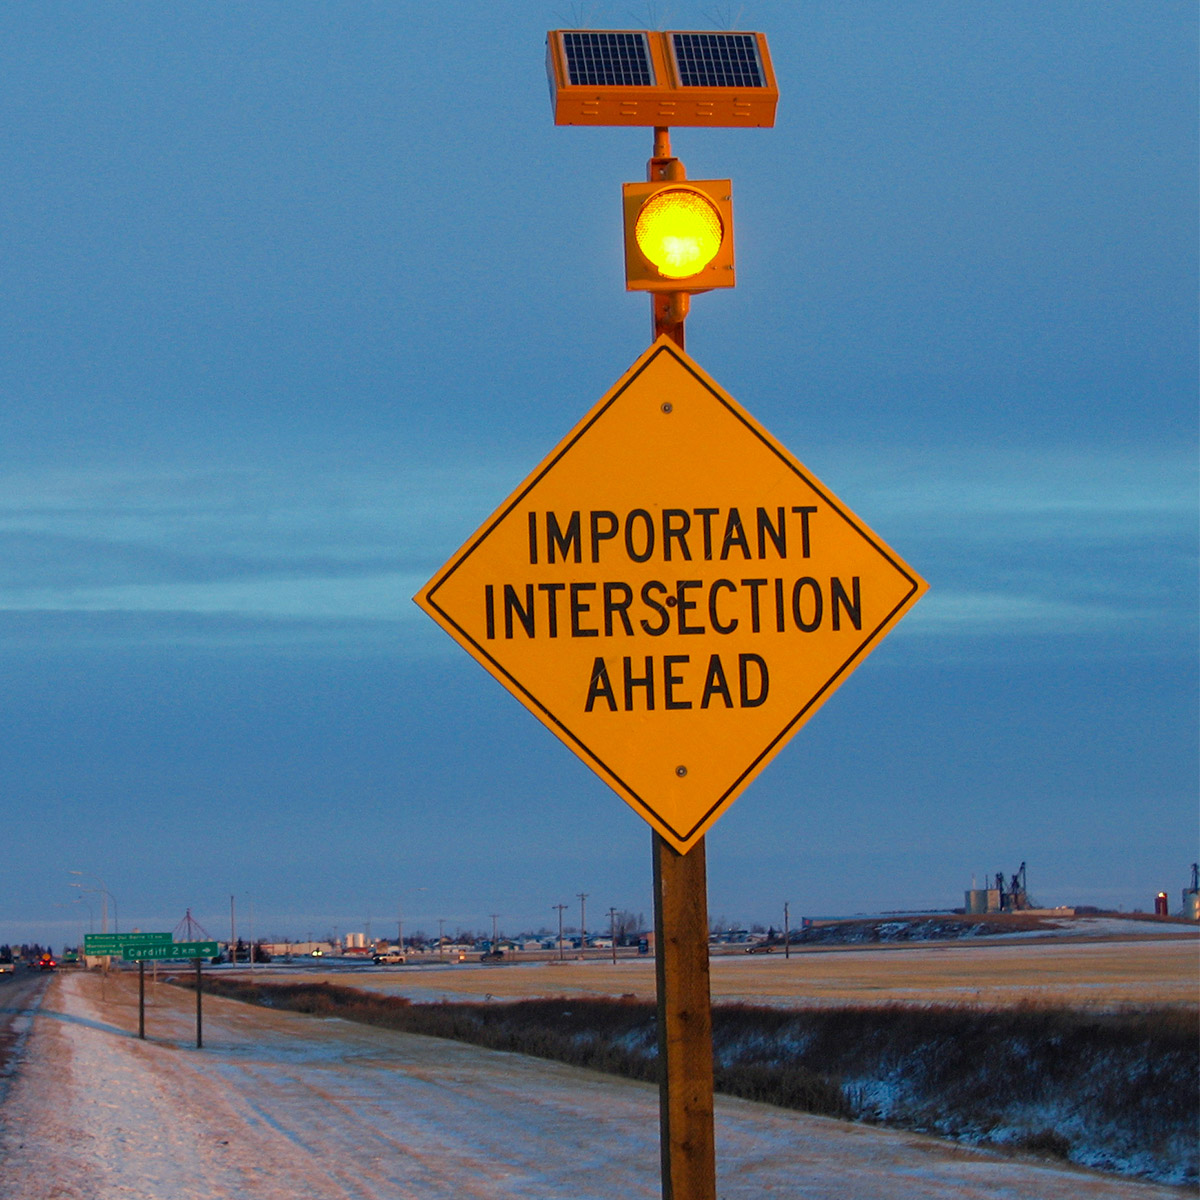 solar-powered warning sign beacon on important intersection ahead sign